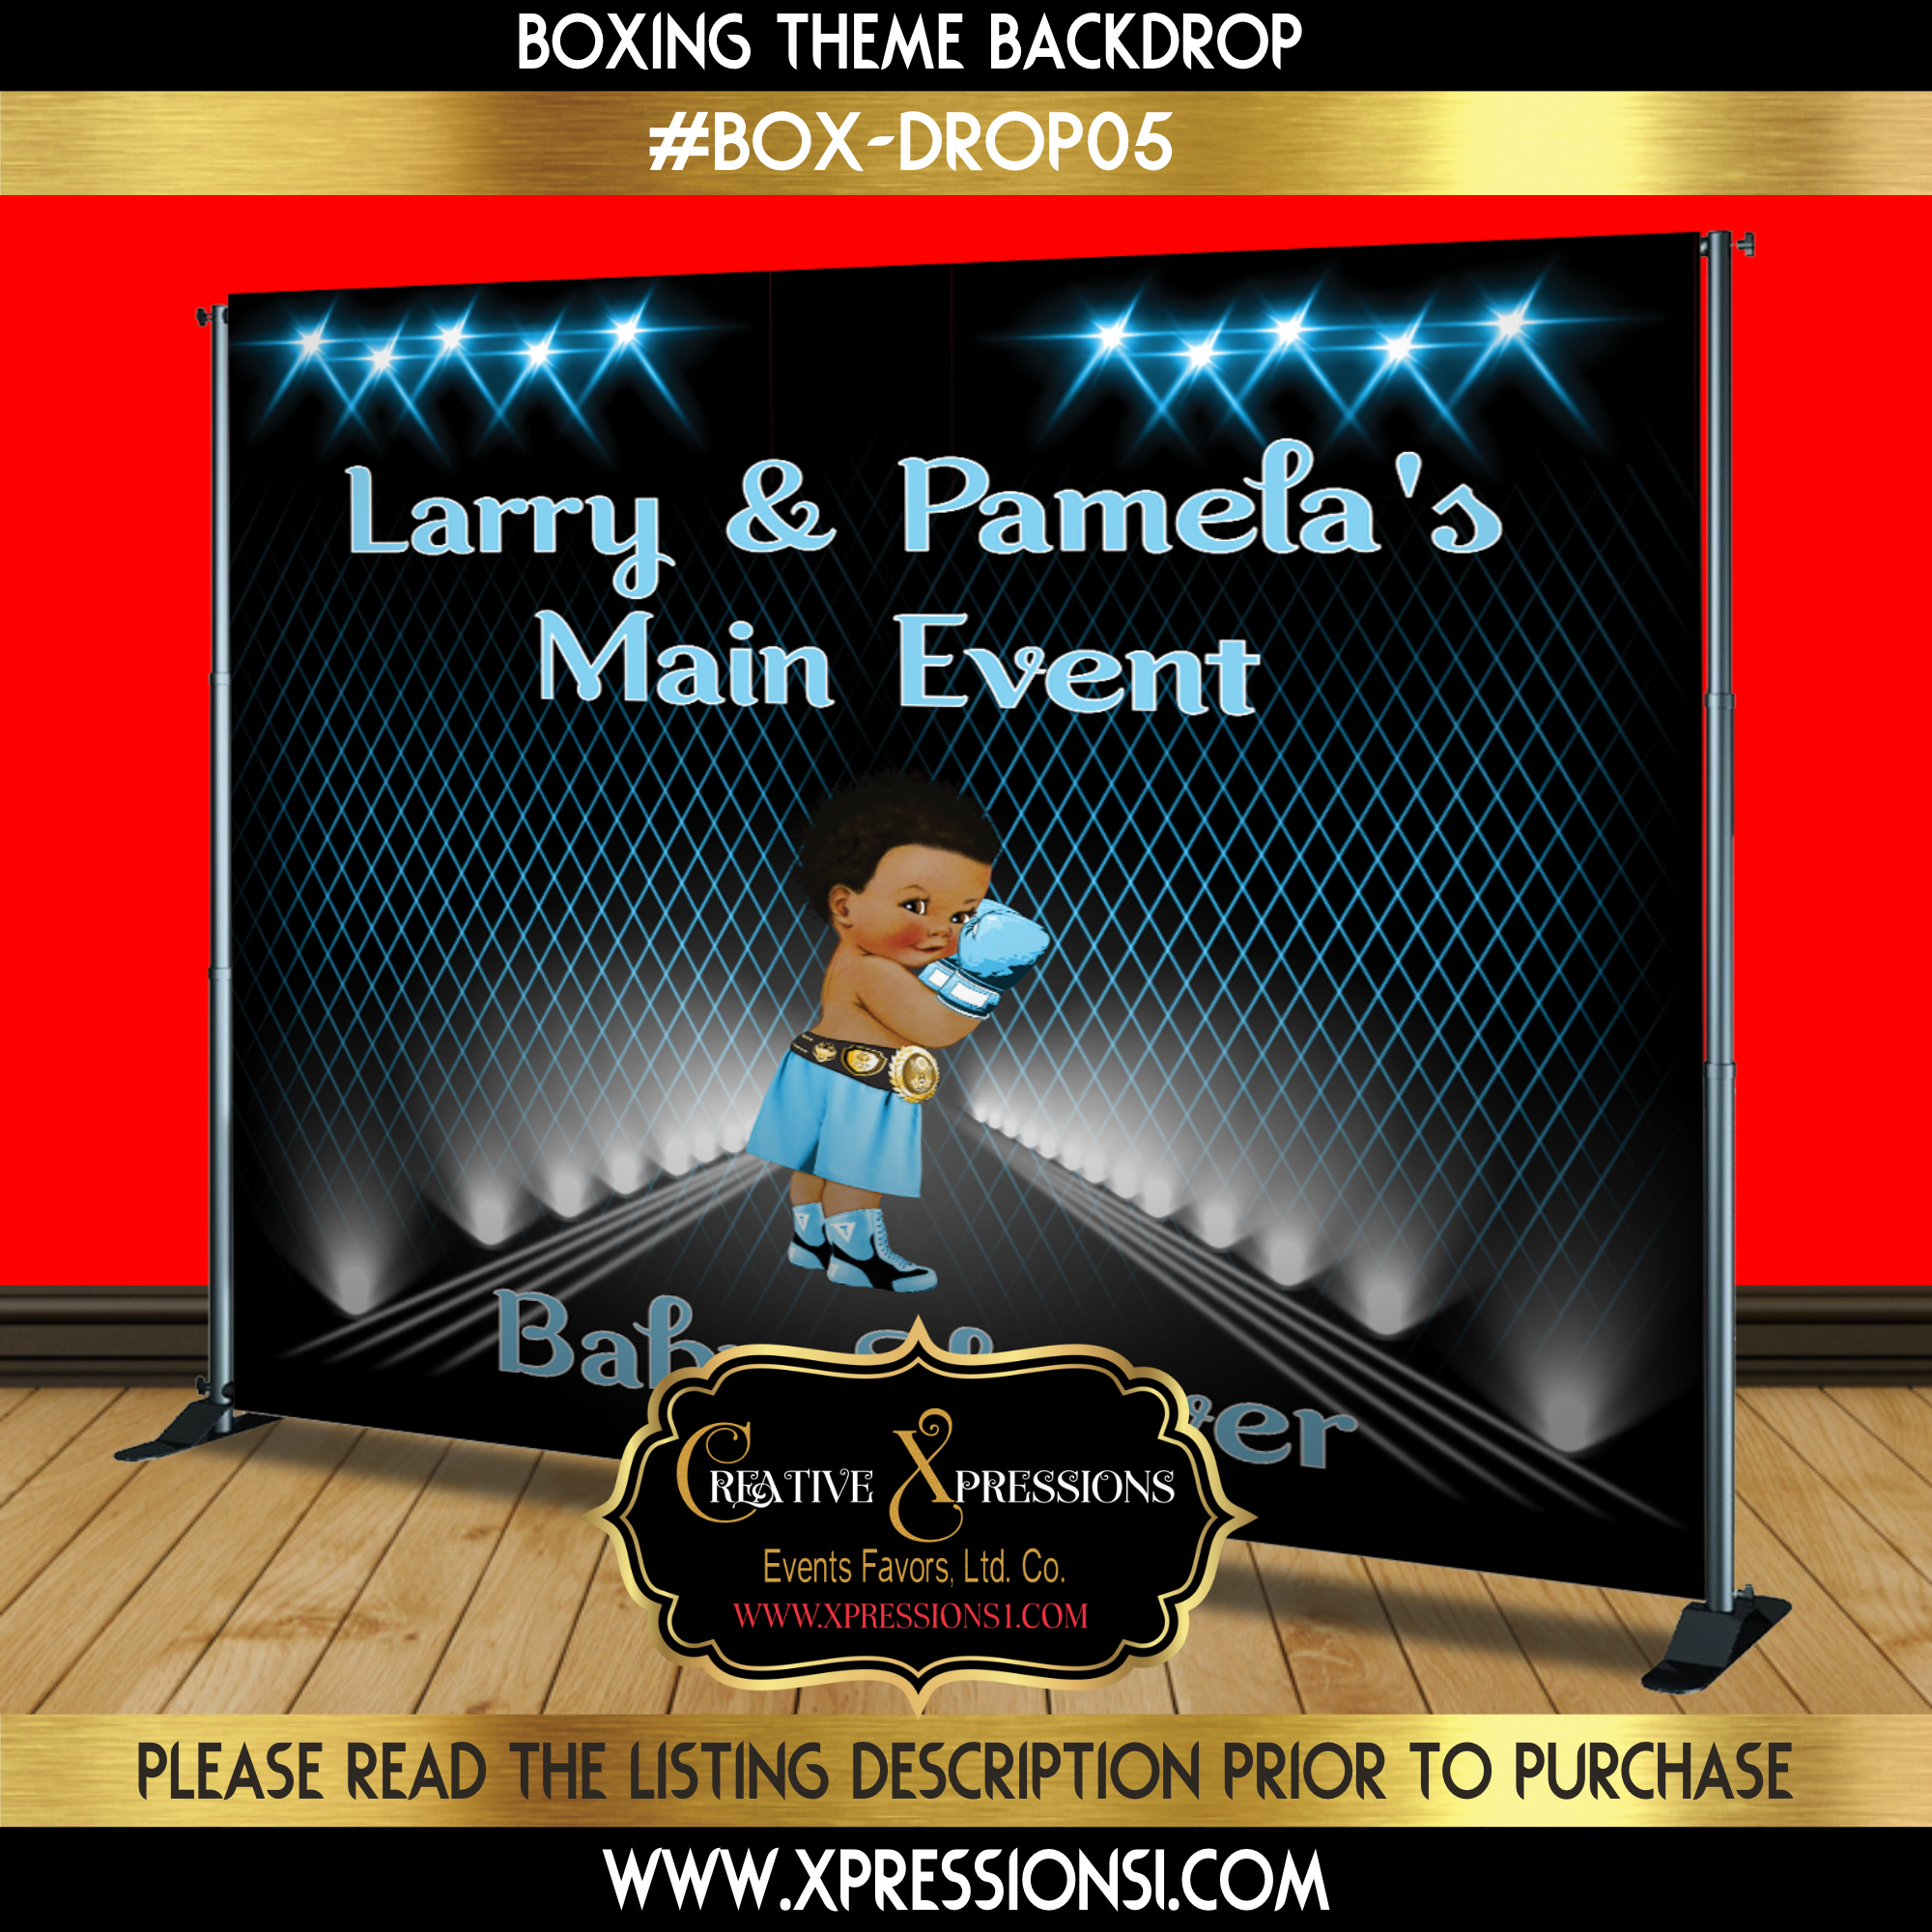 Baby Blue Boxing Backdrop